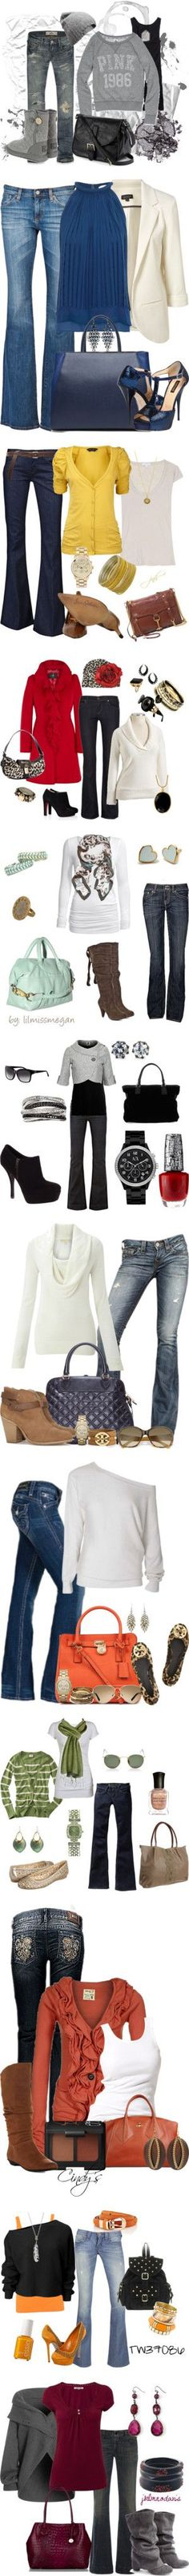 """others i love!"" by brittanyannthomas ❤ liked on Polyvore"